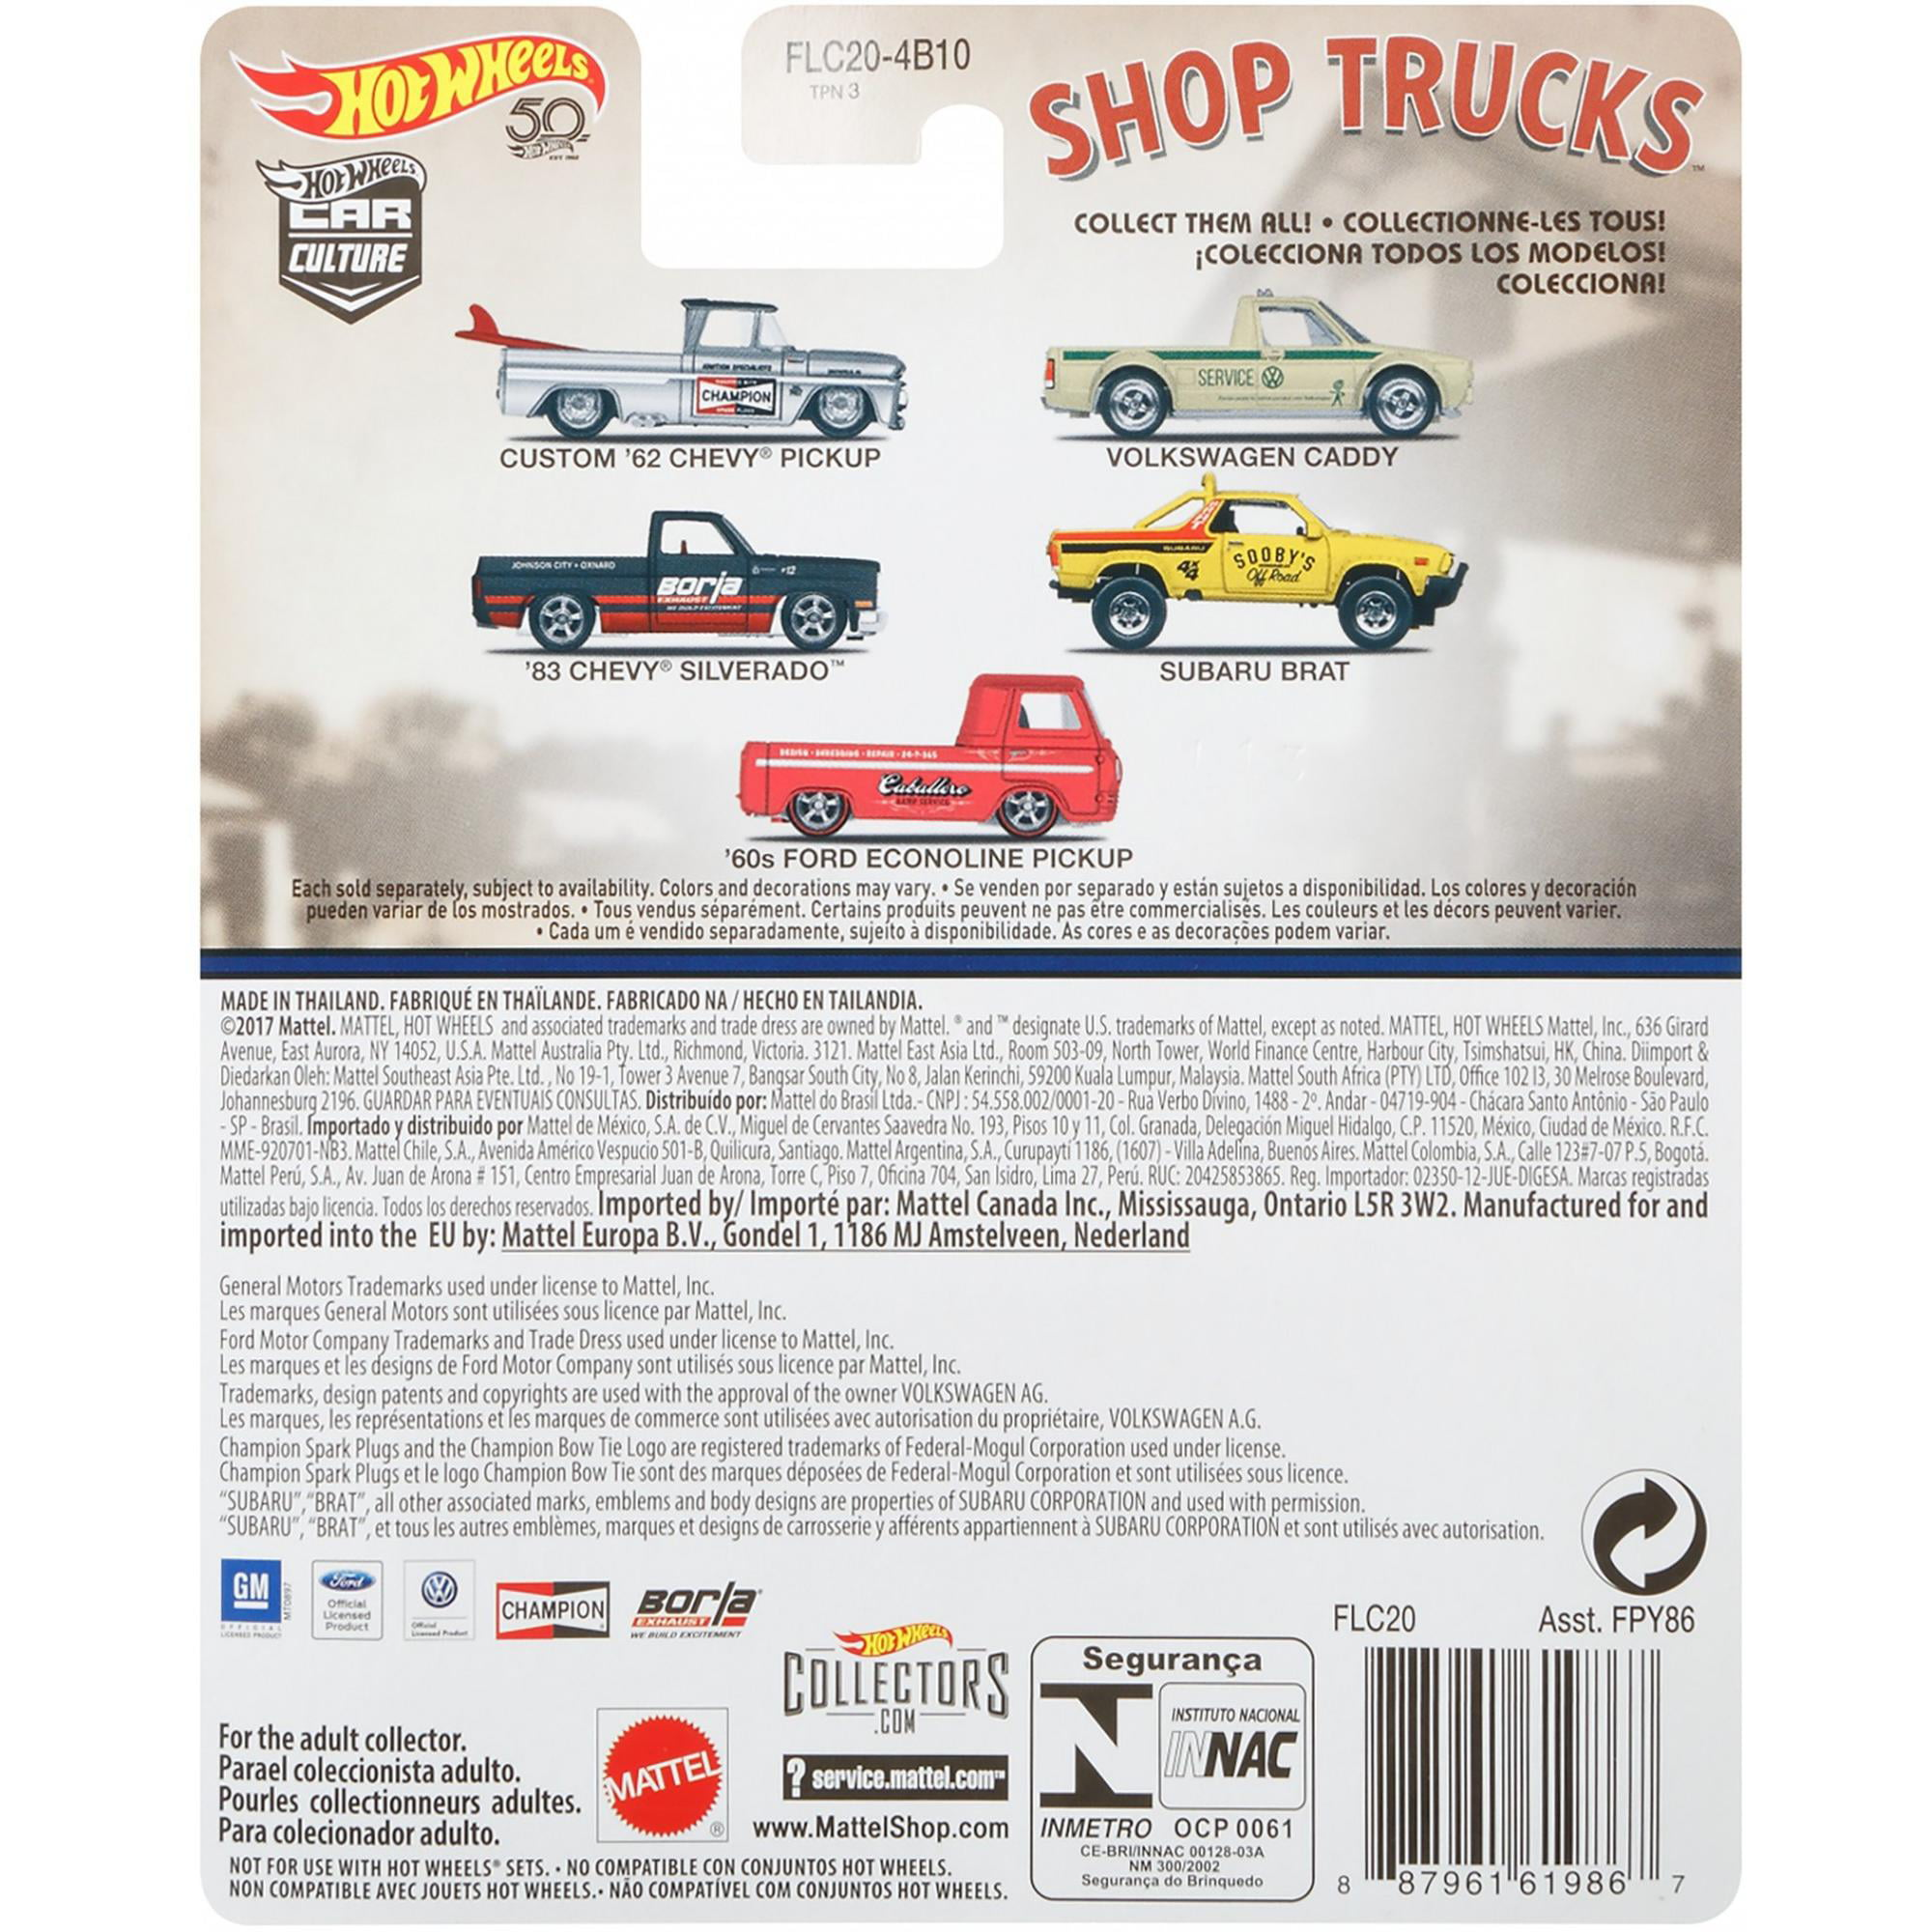 CUSTOM/'62 CHEVY PICKUP negozio Trucks car culture 1:64 HOT WHEELS flc20 fpy86